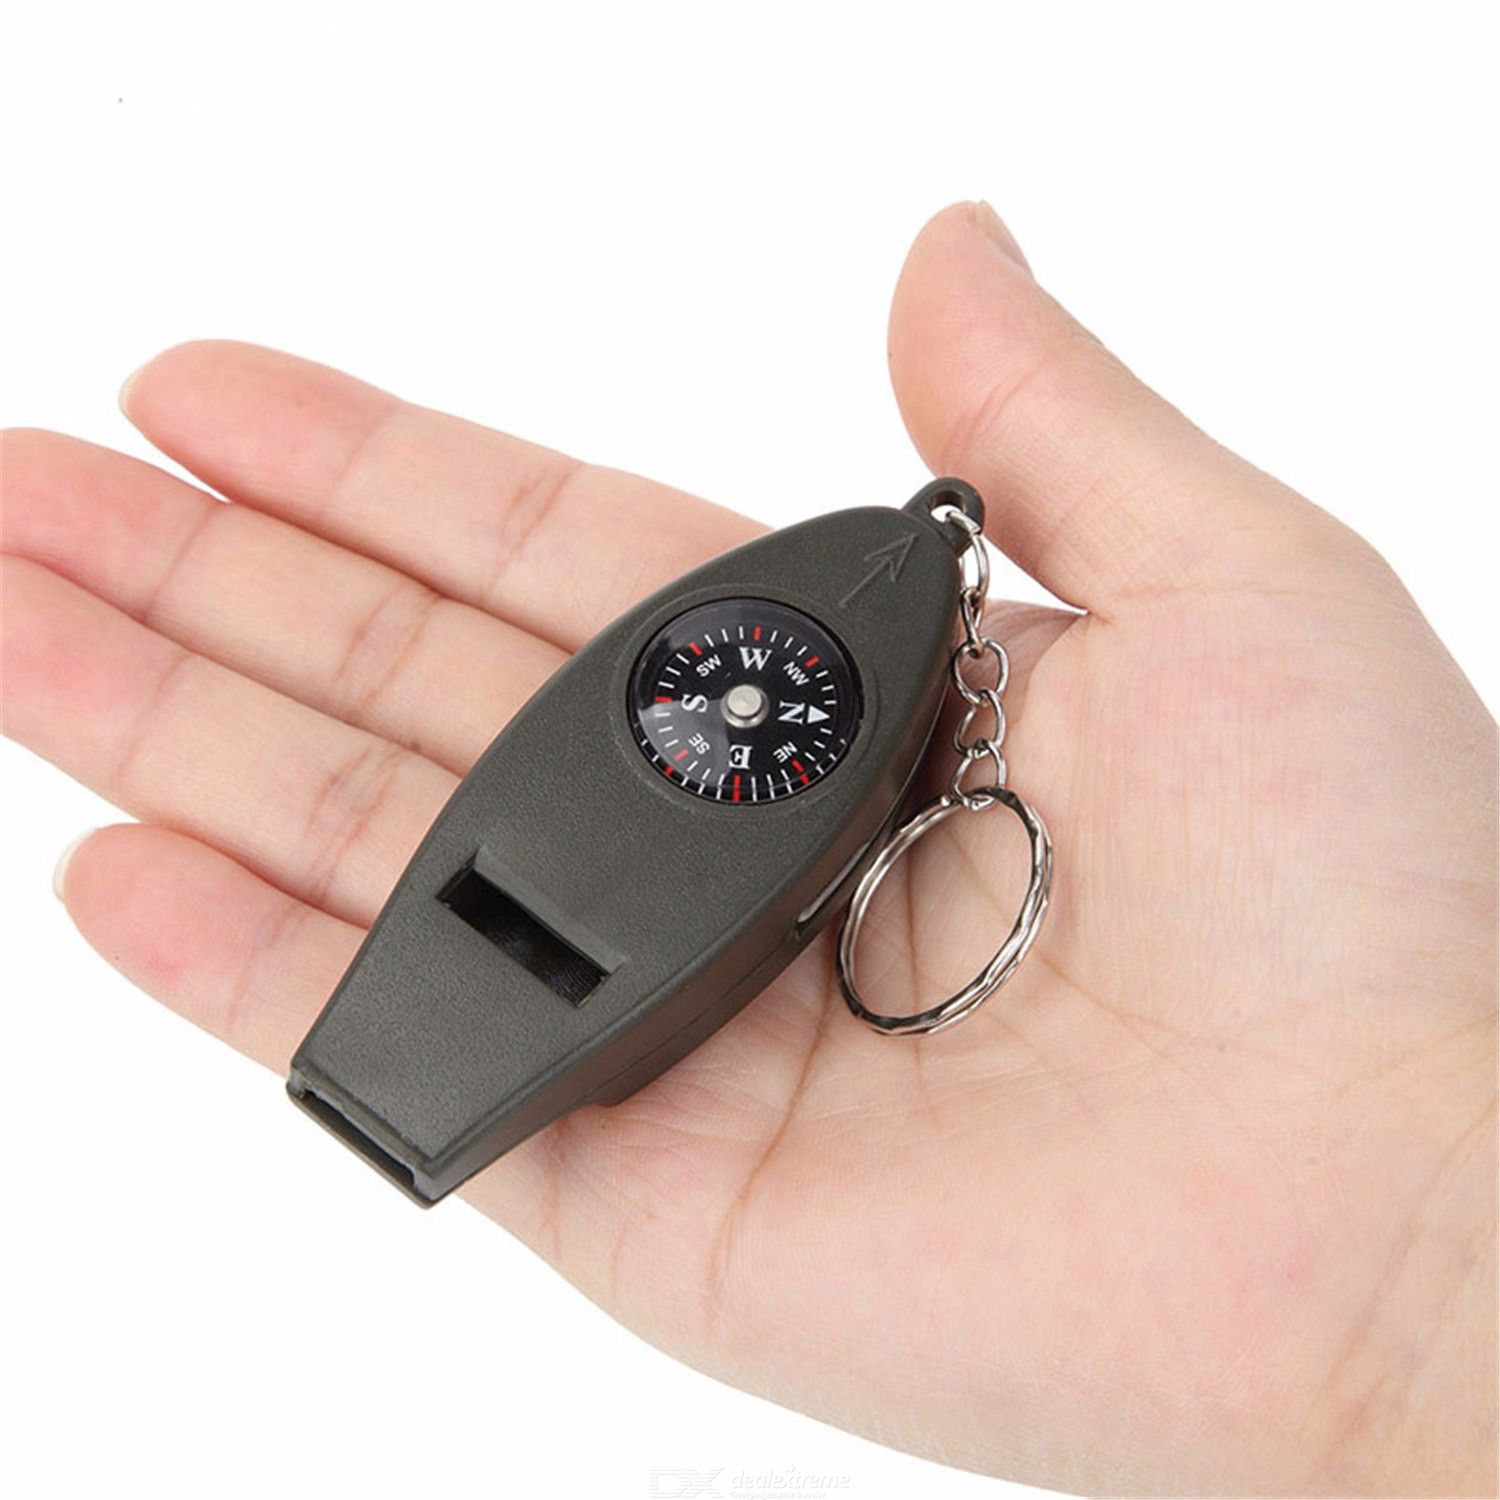 Thermometer | Survival | Keychain | Compass | Outdoor | Travel | Kit